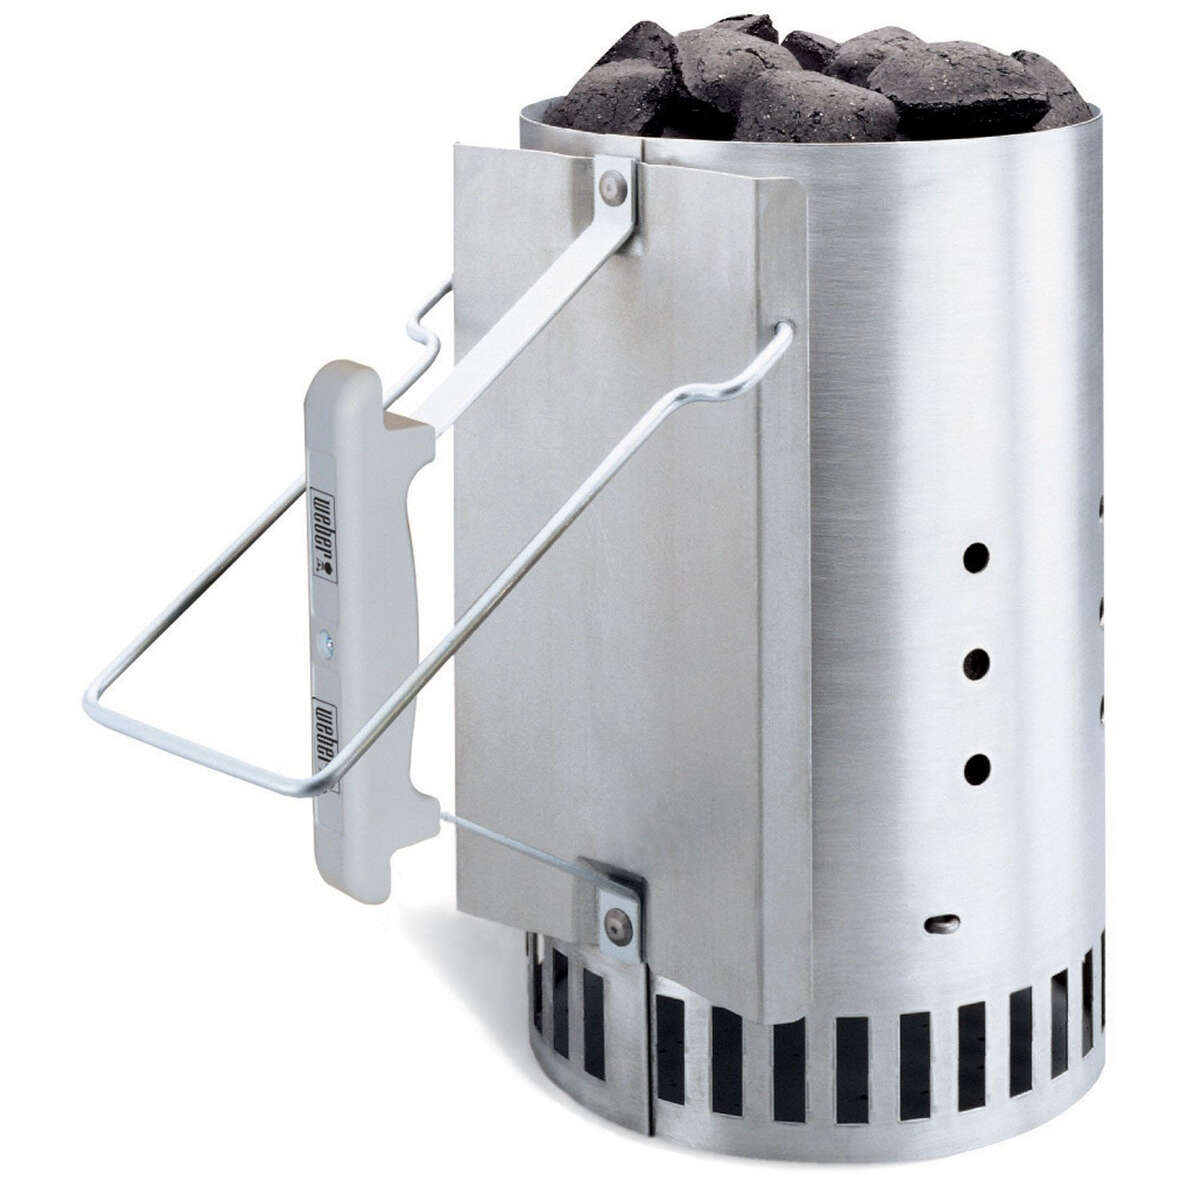 Chimney starter Don't mess with lighter fluid, get a chimney starter. For foolproof barbecue ignition, just add charcoal into the chimney and light some balled up newspaper underneath it. After about 20 minutes, dump the red-hot coals into your barbeque and start grilling.Get one here